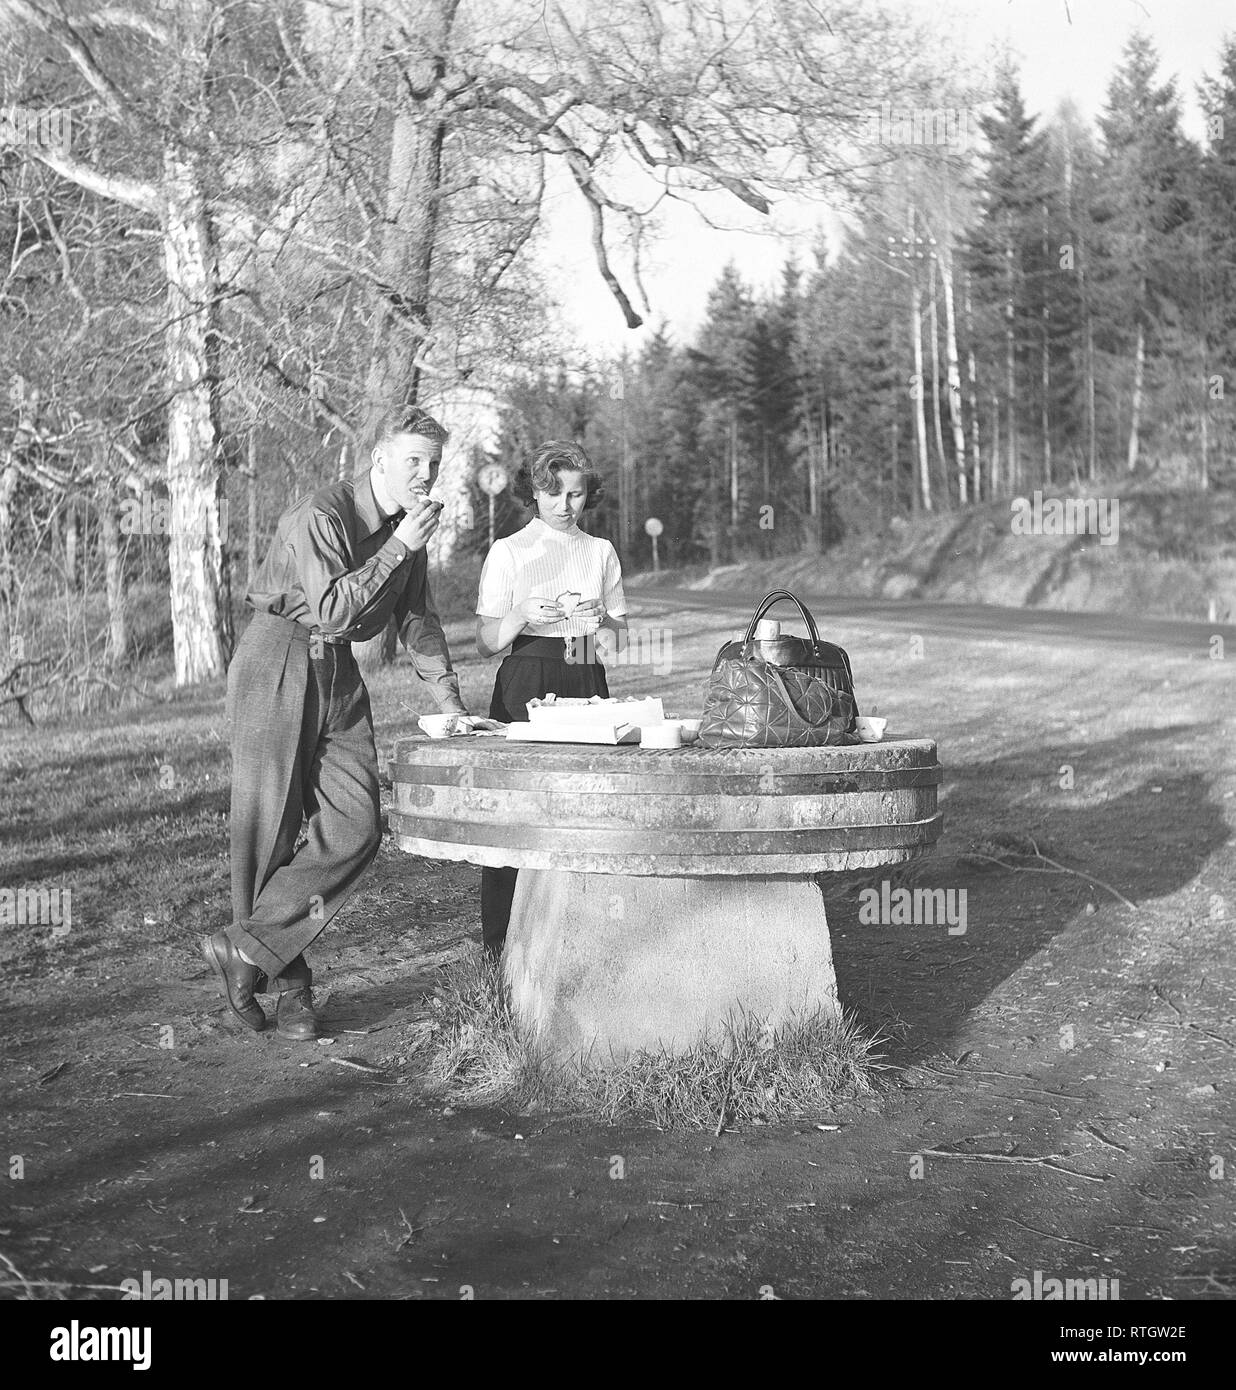 Lifestyle in the 1950s. A young couple has stopped to have a coffee and a sandwich by the roadside. An old millstone makes a good table for the picnic. Photo Kristoffersson Ref BF76-4. Sweden 1952 Stock Photo